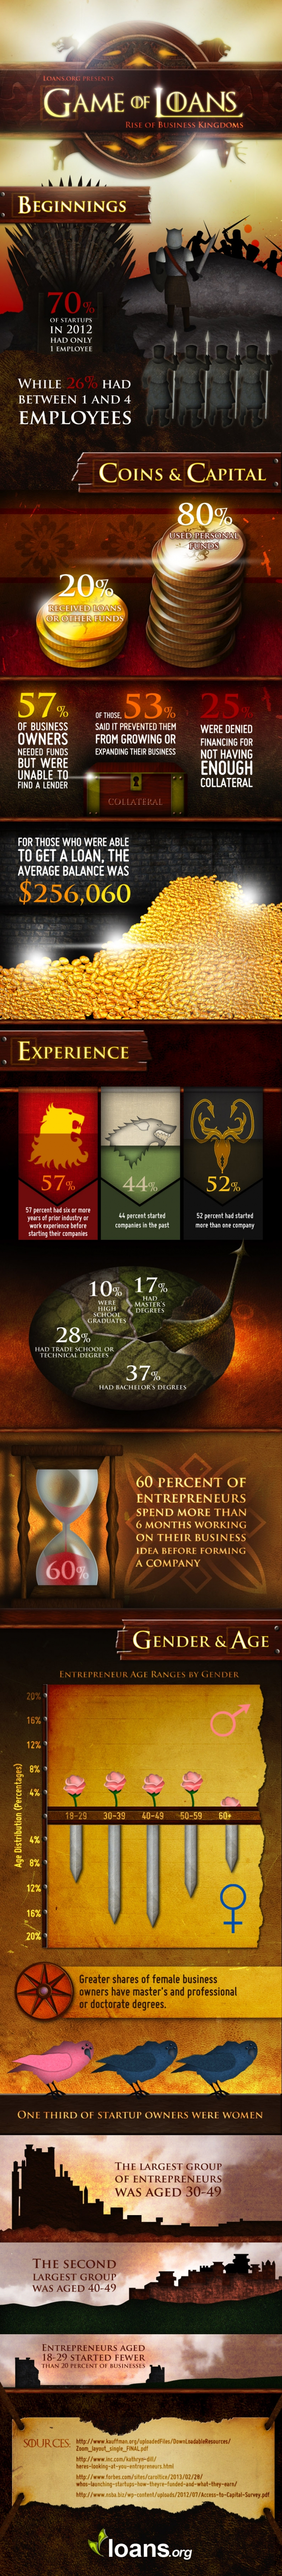 Game of Loans infographic with Game of Thrones style